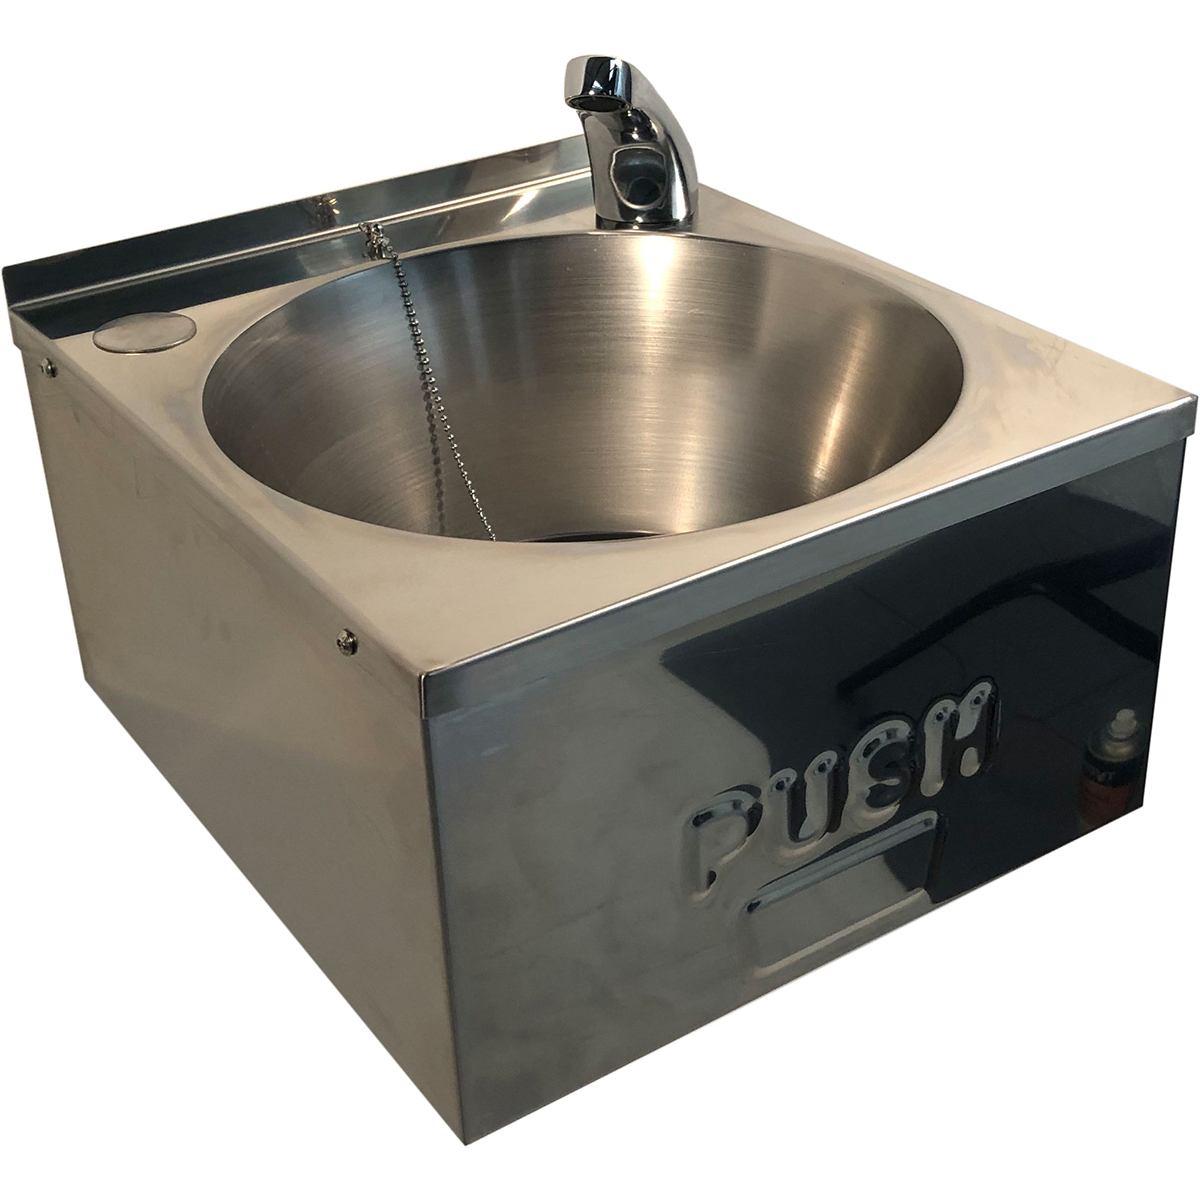 New Sink Waste Disposal Units